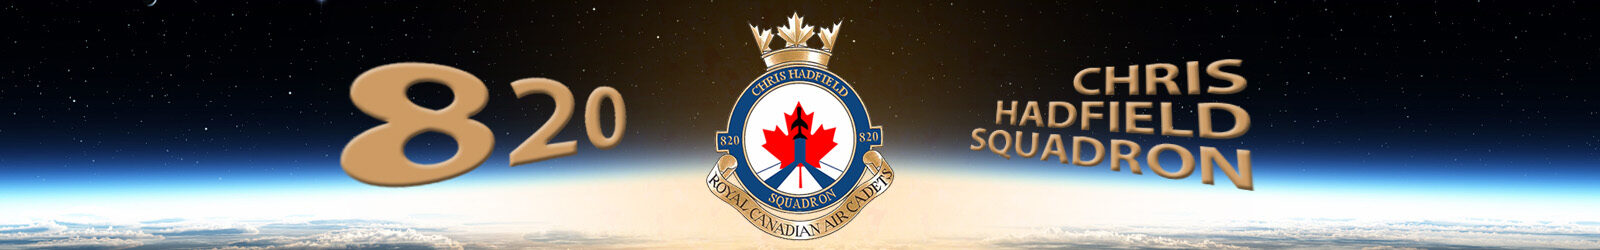 820 Chris Hadfield Squadron